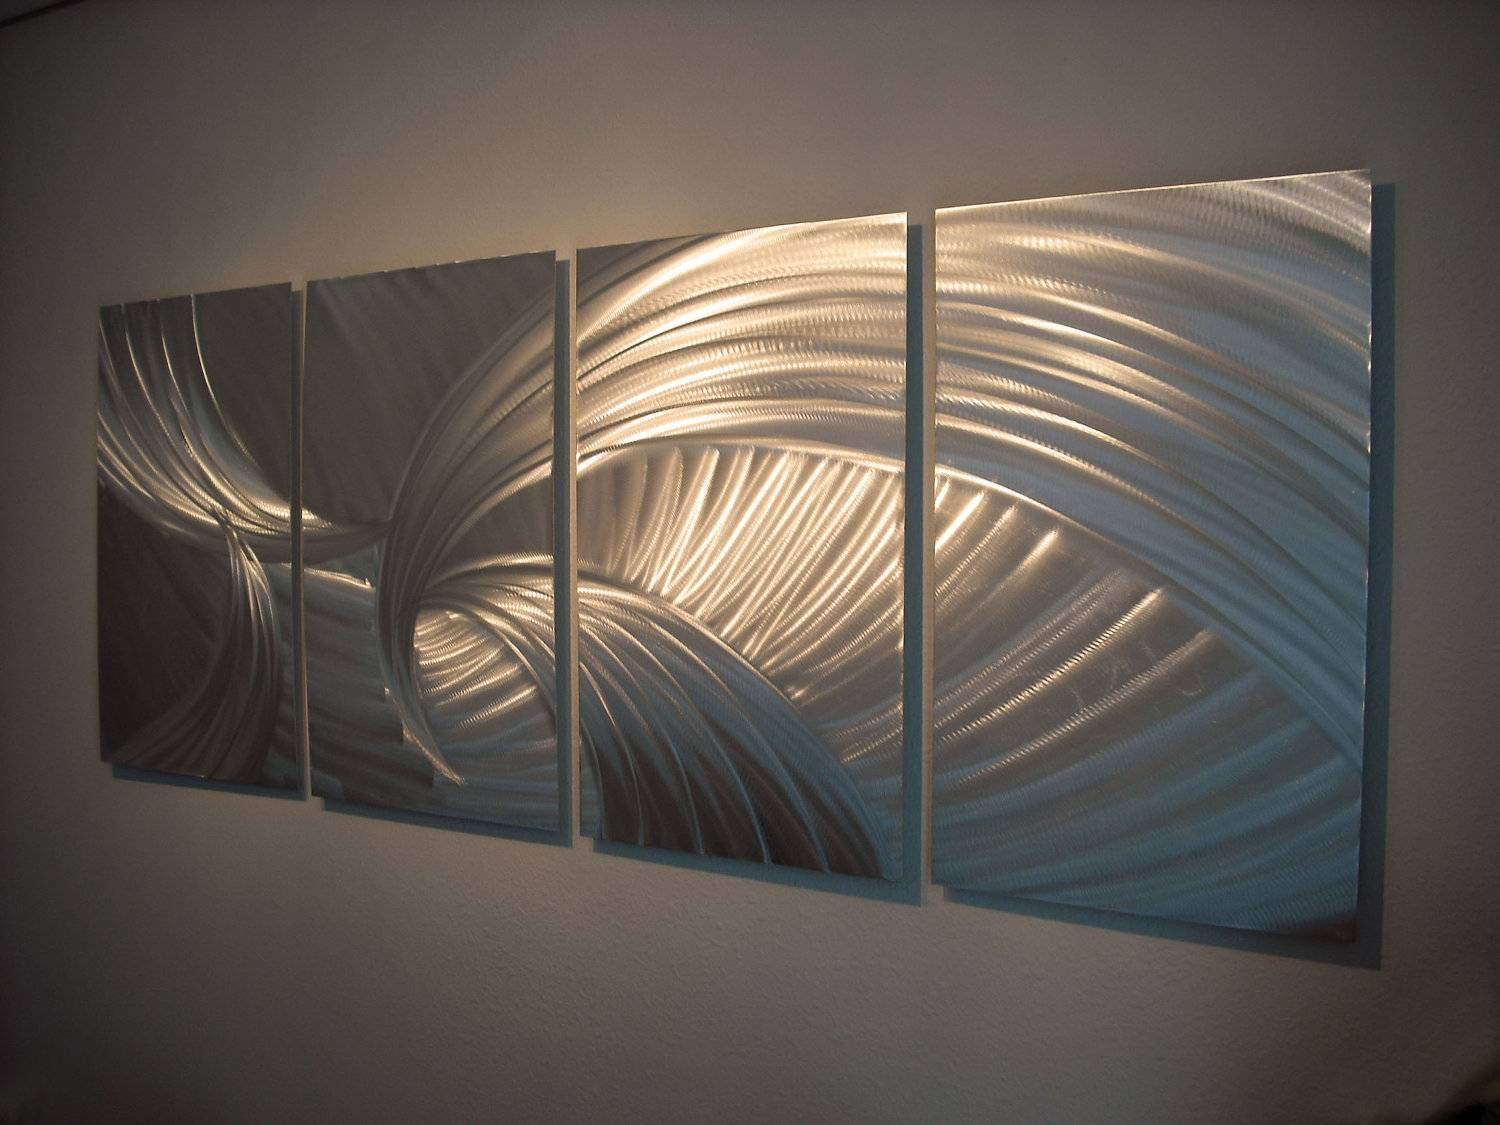 Inspiring Design Metal Wall Designs 1000 Images About Metal Art On Pertaining To Most Recently Released Contemporary Metal Wall Art Sculpture (Gallery 14 of 20)